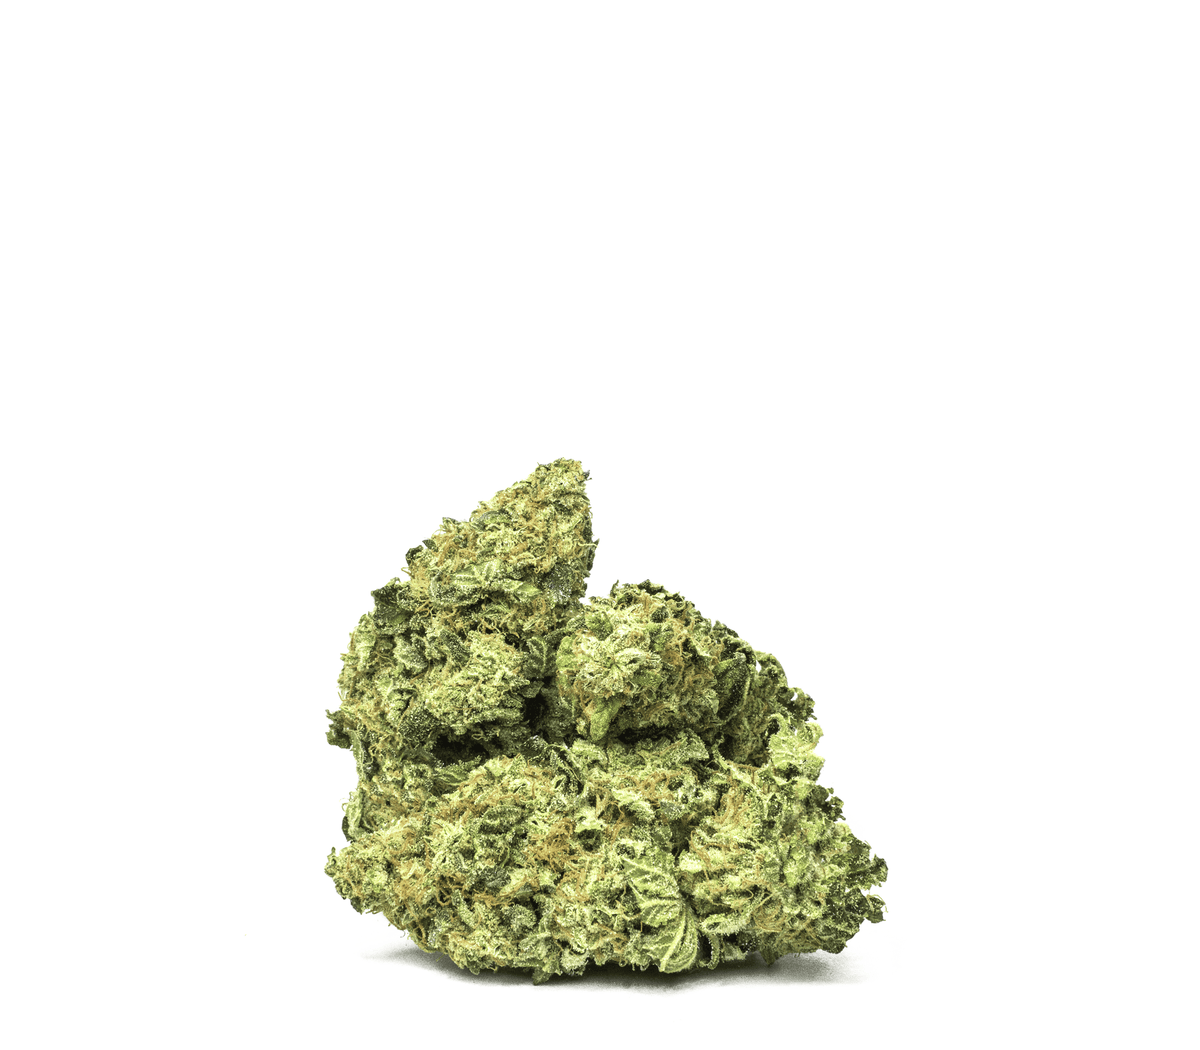 This hybrid of the OG Kush and Durban Poison strains boasts full body relaxation, while at the same time offering a powerful cerebral sensation.The euphoric sensation of the Girl Scout Cookies can leave you happy and relaxed. THC 20-24% CBD <1%. Sold by Prairie Records. Find it in Saskatchewan.